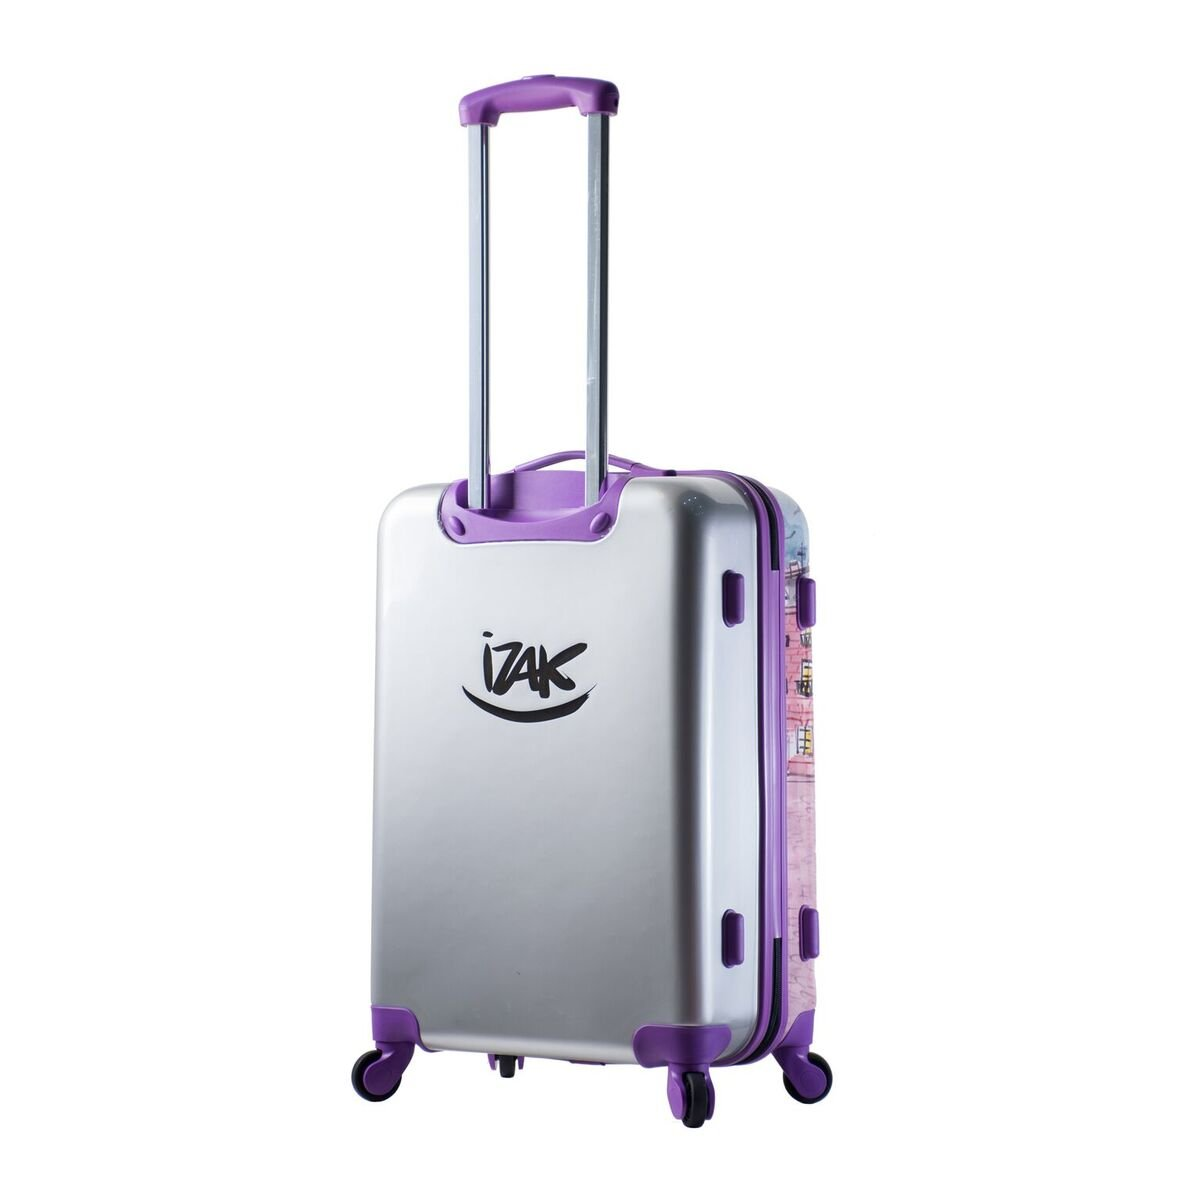 Mia Toro Izak-Paris Fashion Hard-side Spinner Luggage 3PC/Set with 10-Year Warranty--BEST GIFT for Christmas!!!!! by Mia Toro (Image #4)